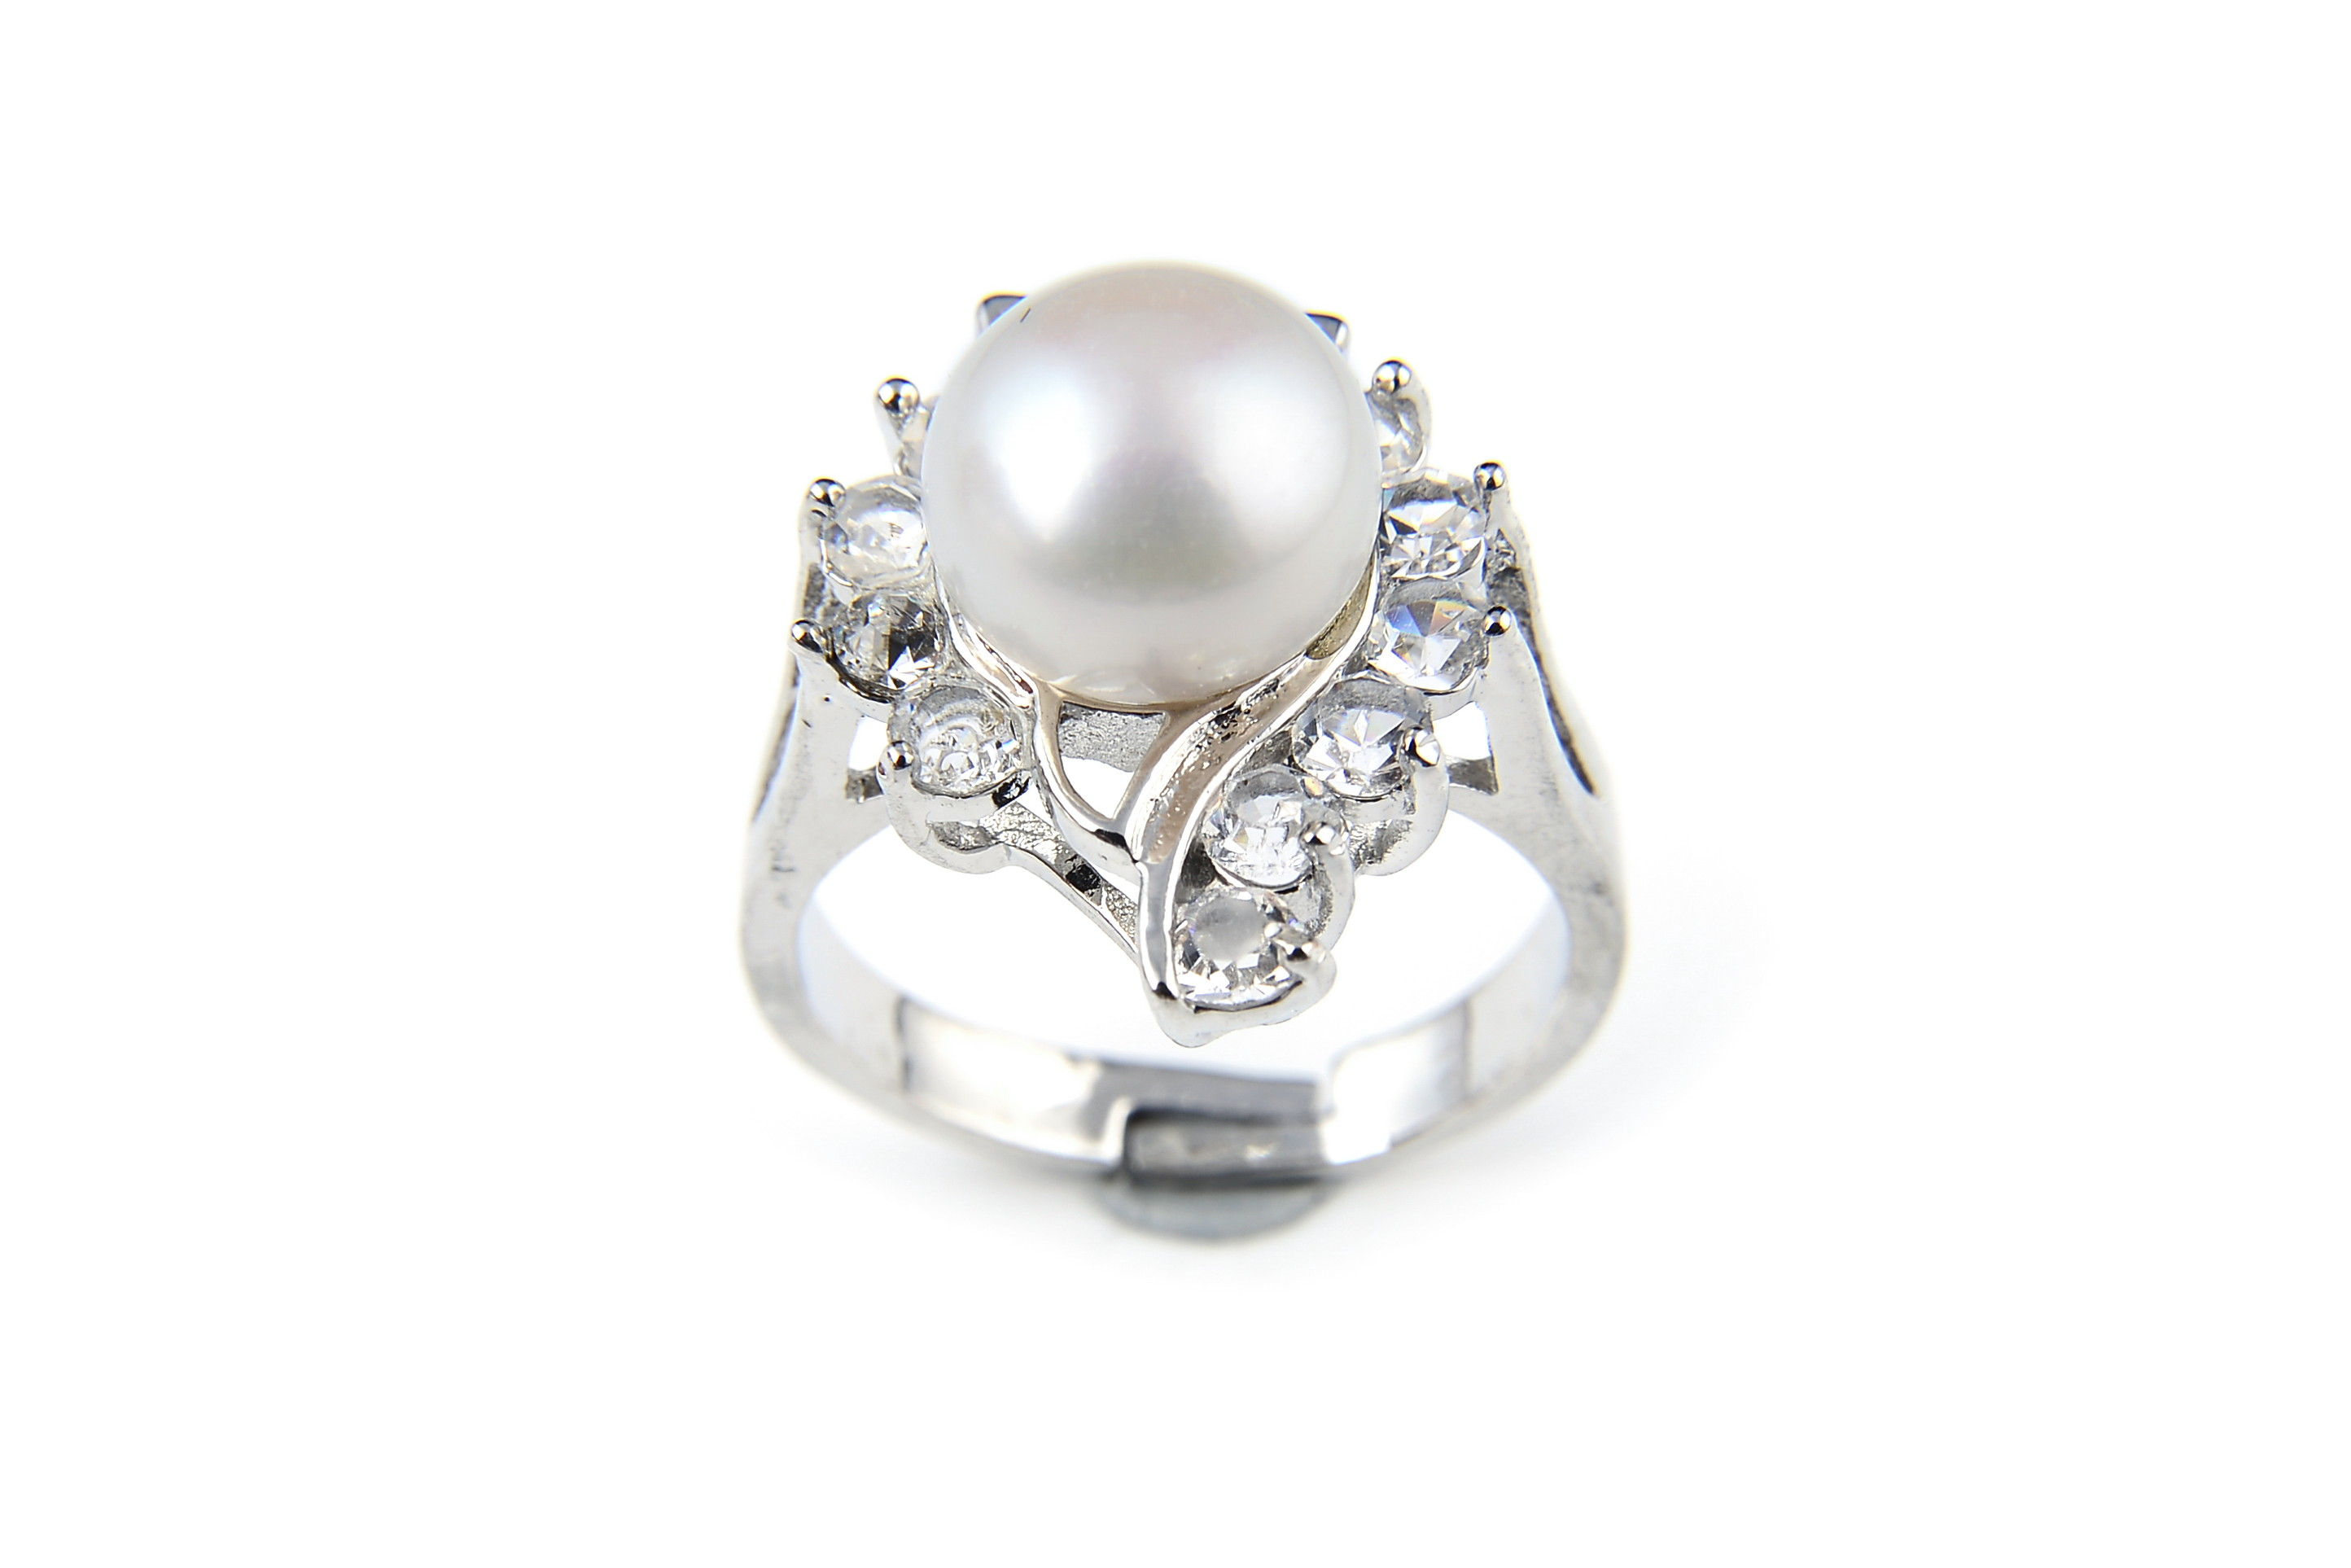 10mm AAA White Freshwater Cultured Pearl Diamond CZ Ring - Various sizes -rg45